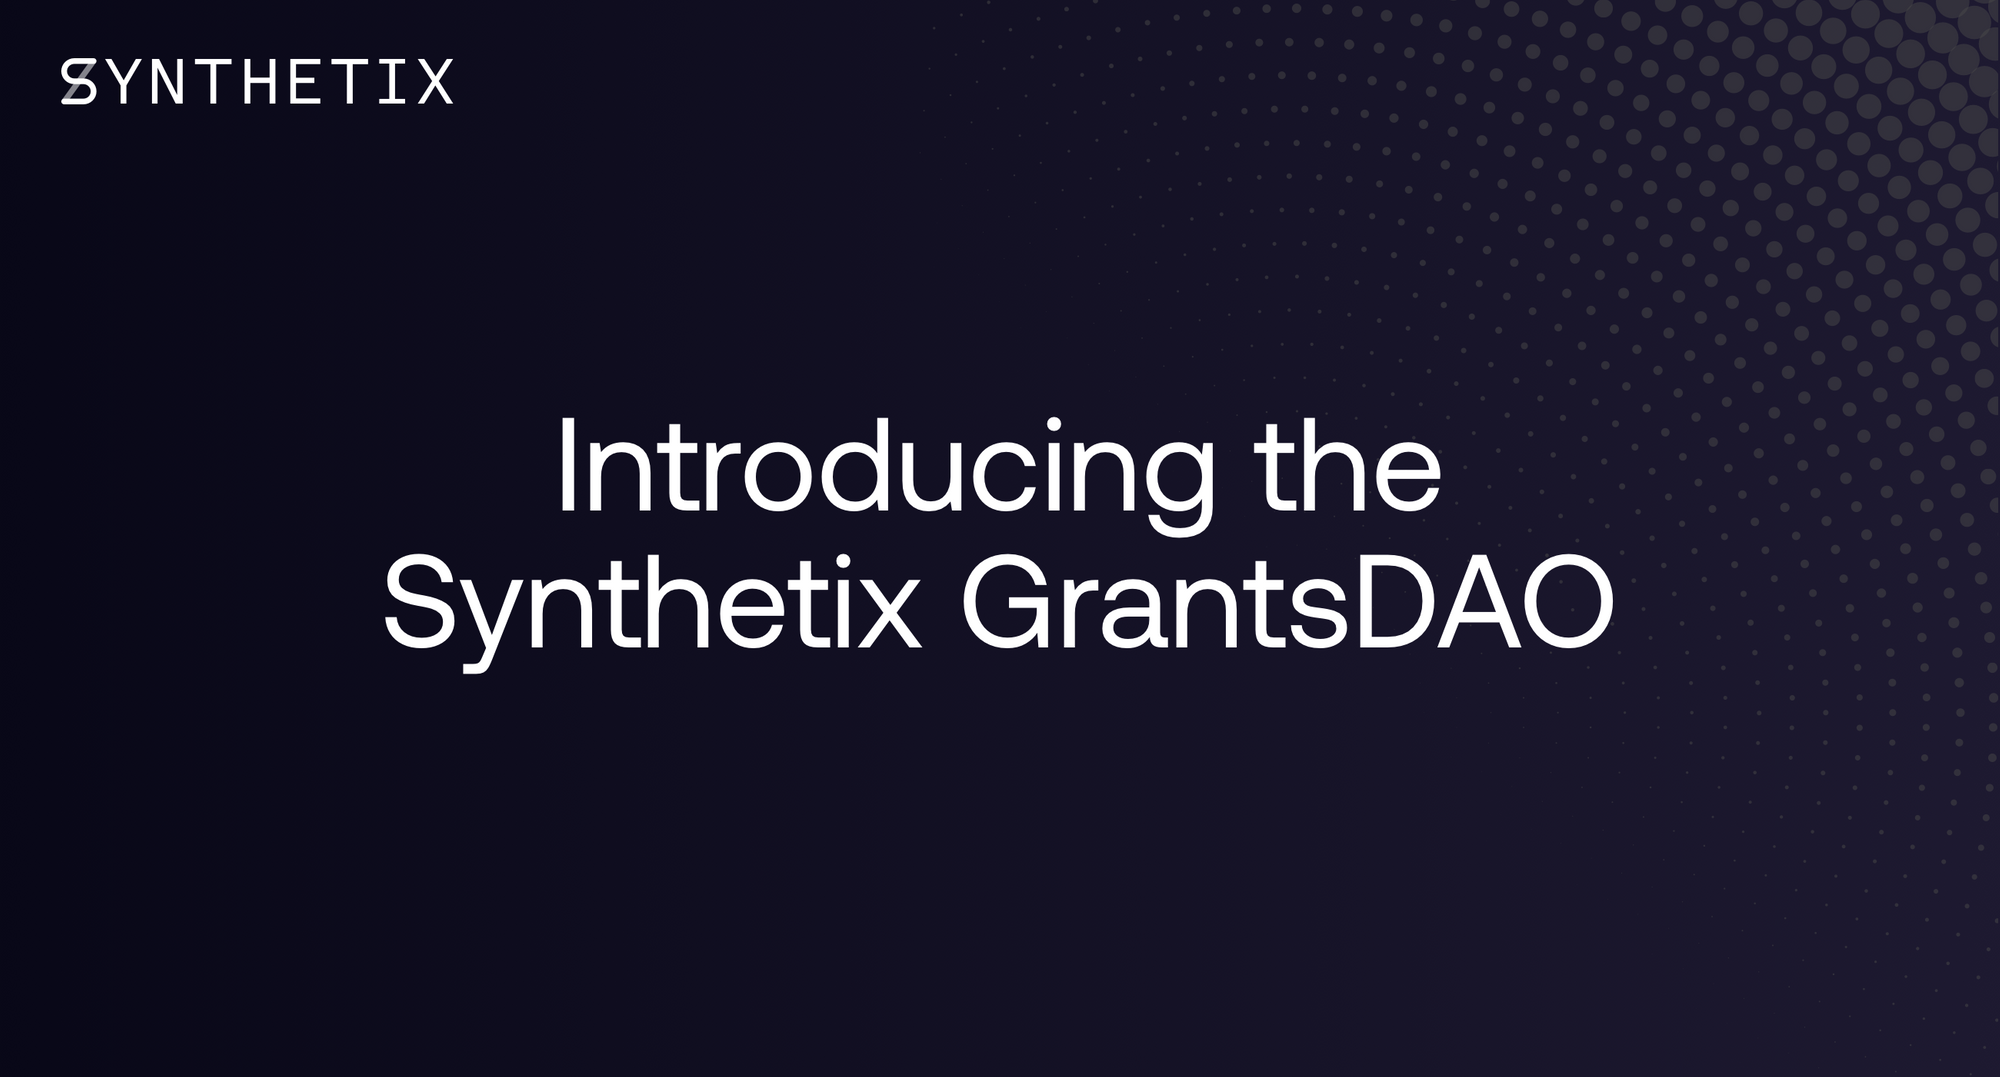 Introducing the Synthetix GrantsDAO!